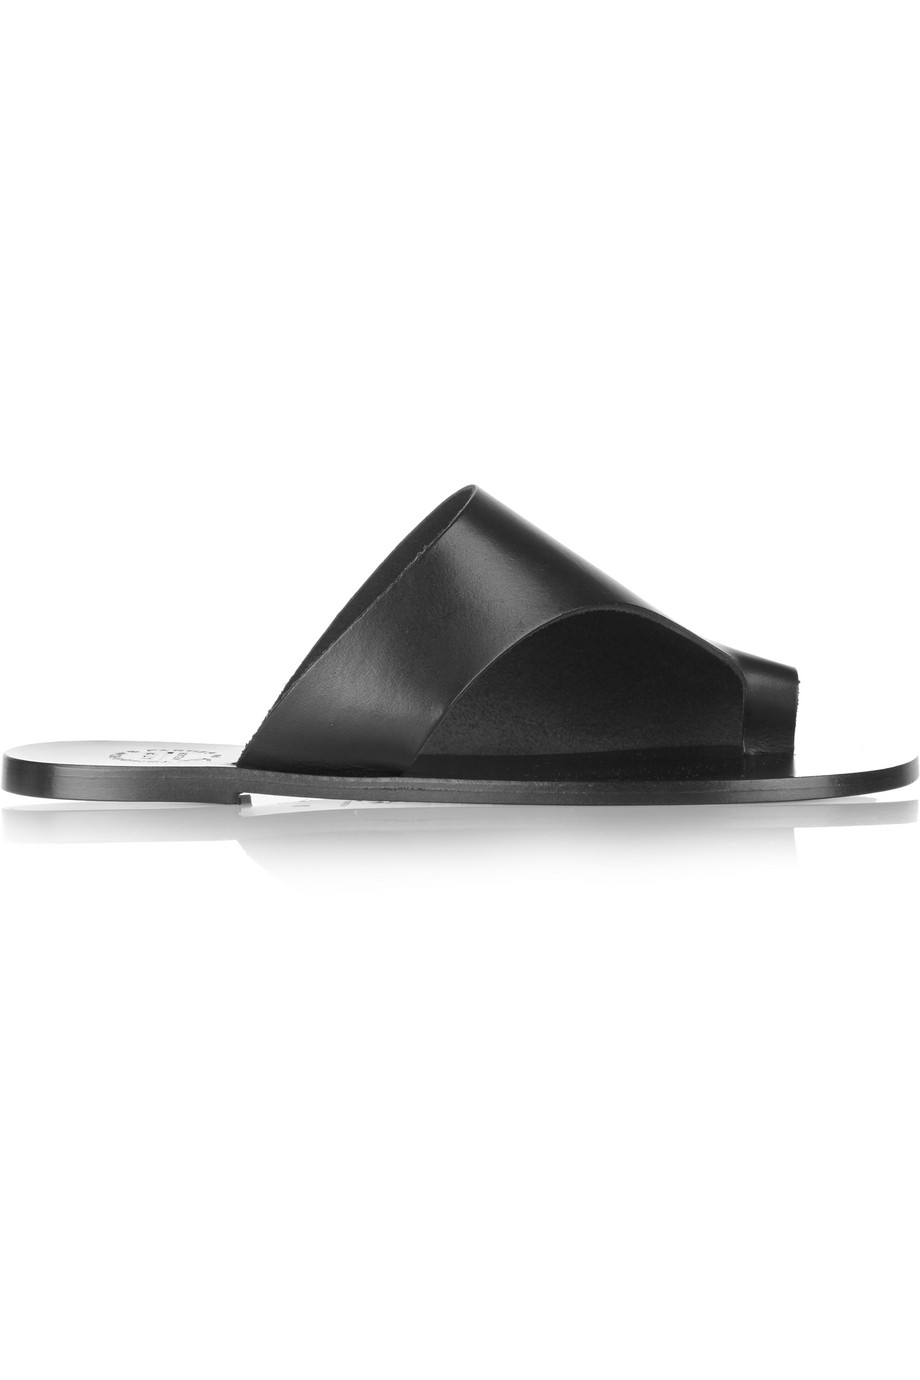 ATP Atelier Rosa Cutout Leather Slides, Black, Women's US Size: 7.5, Size: 38